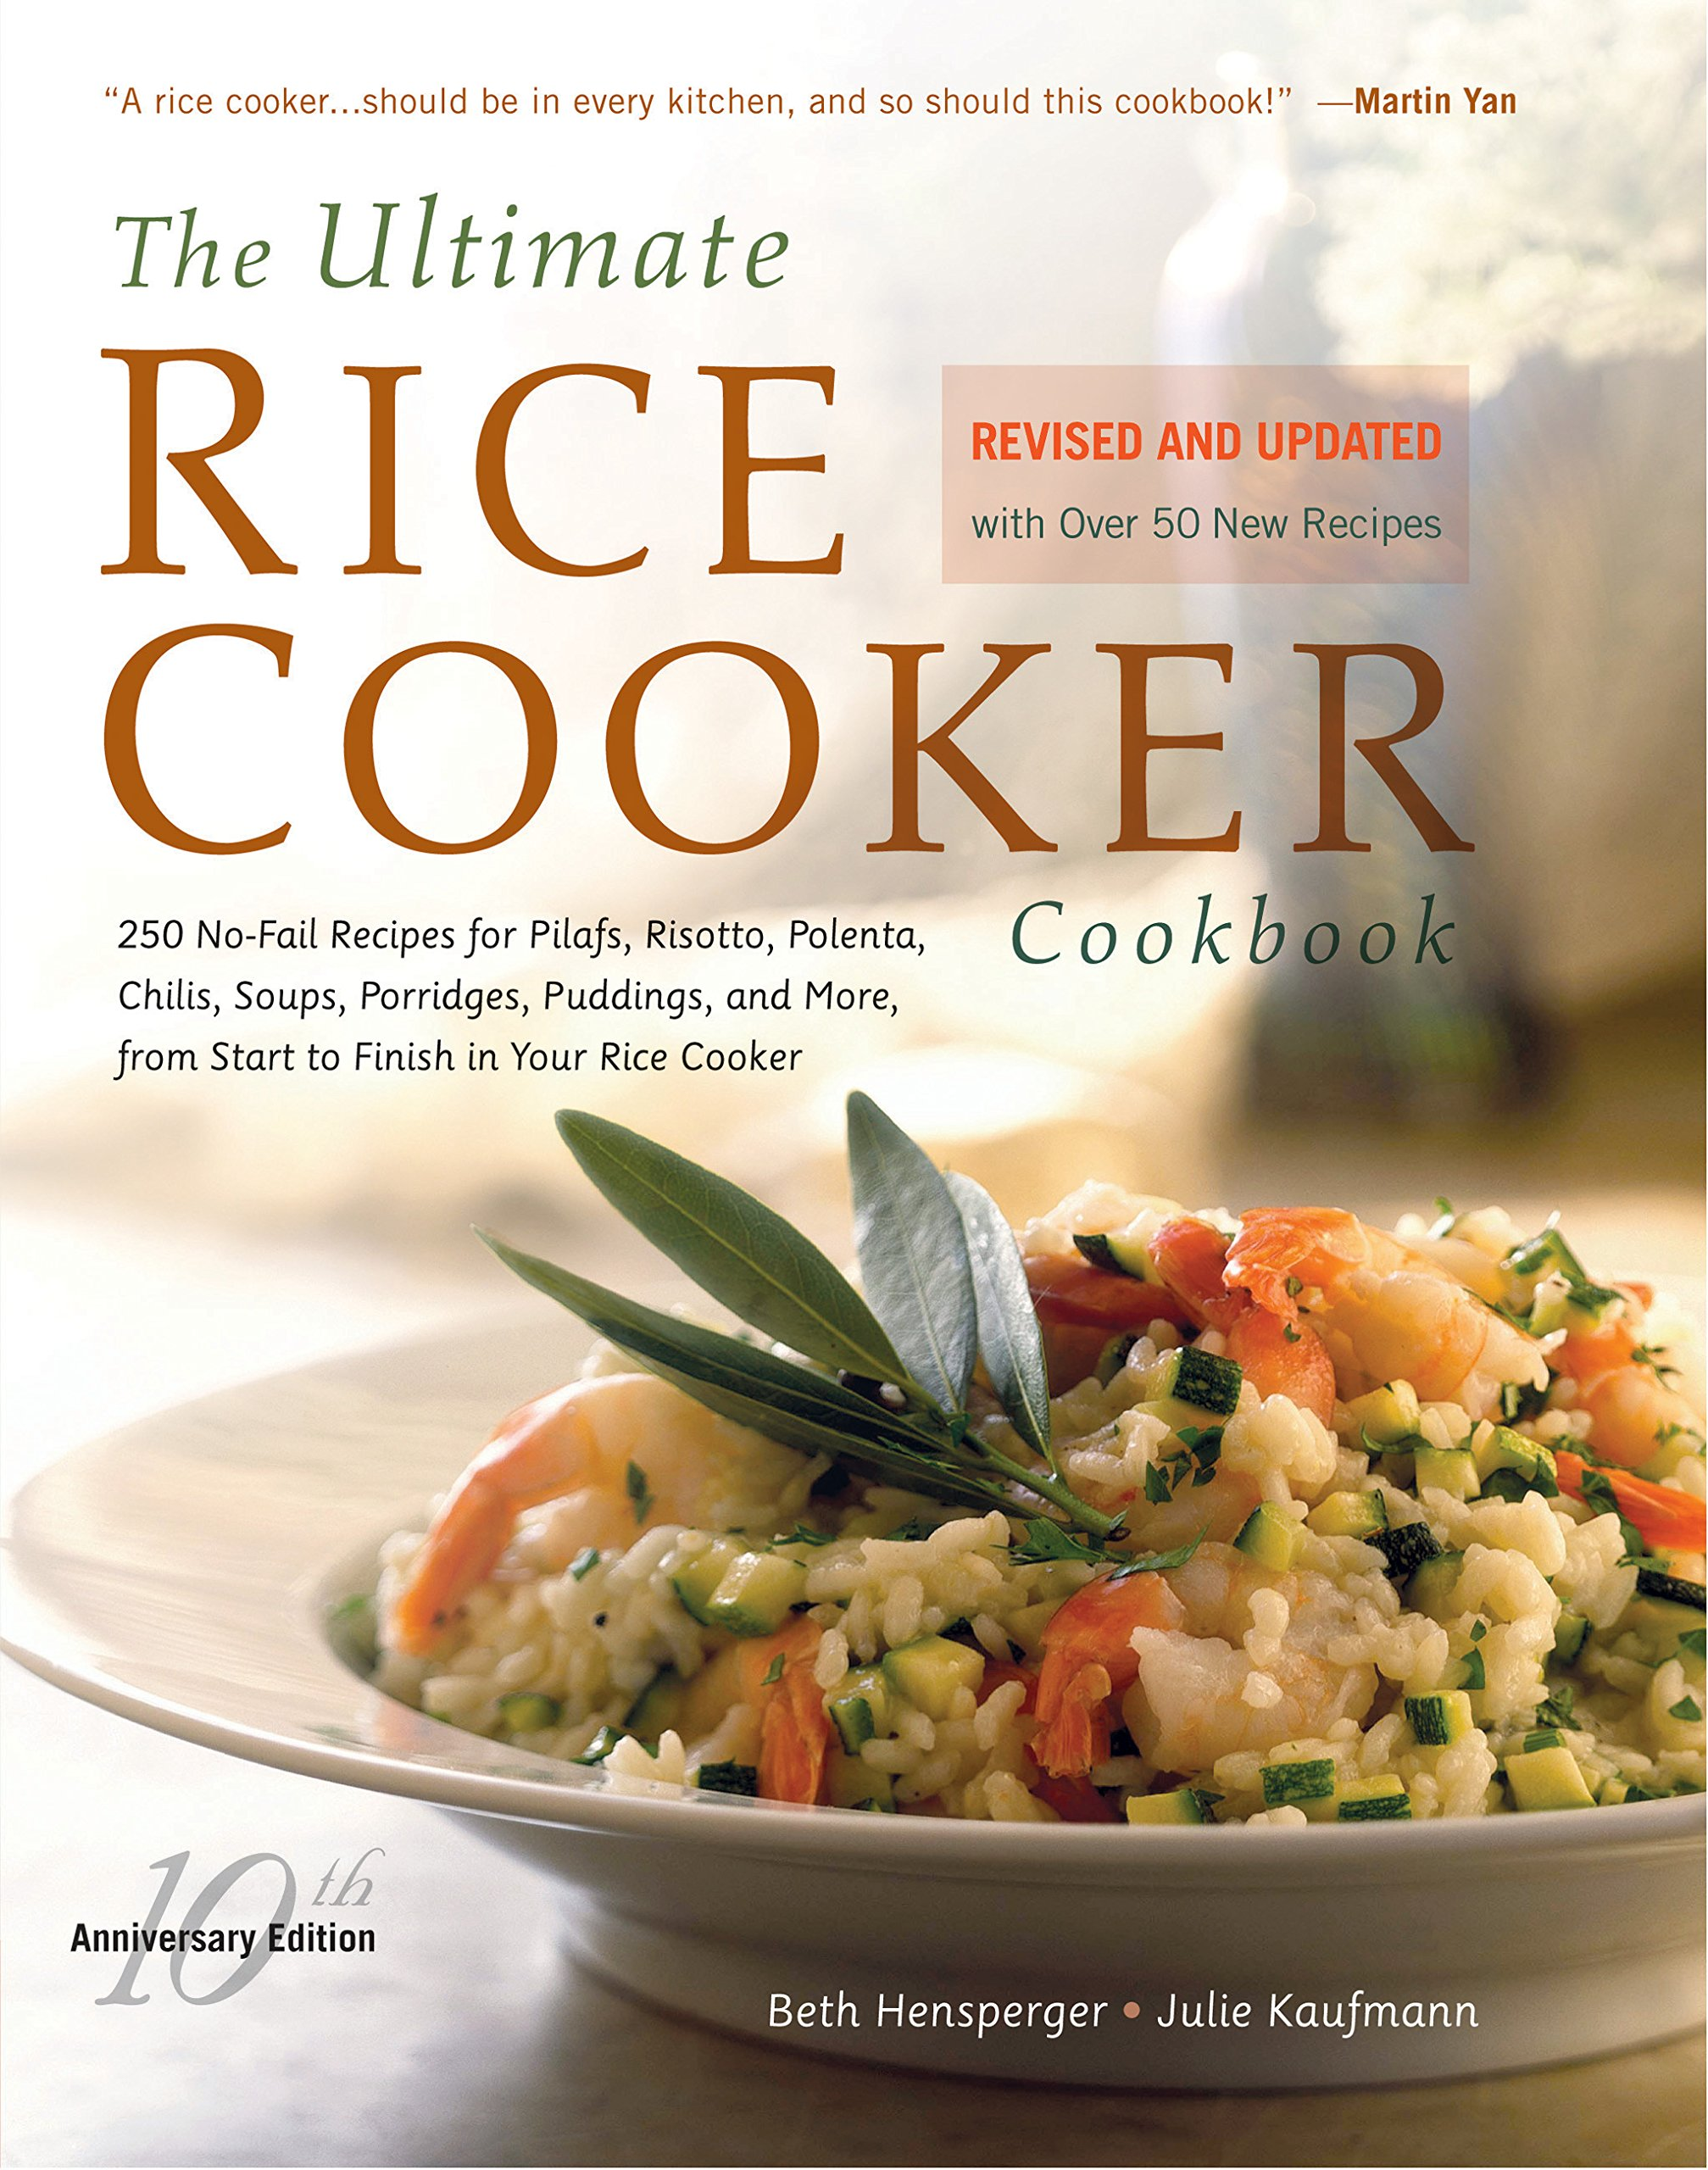 The Ultimate Rice Cooker Cookbook: 250 Nofail Recipes For Pilafs,  Risottos, Polenta, Chilis, Soups, Porridges, Puddings, And More, From Start  To Finish In